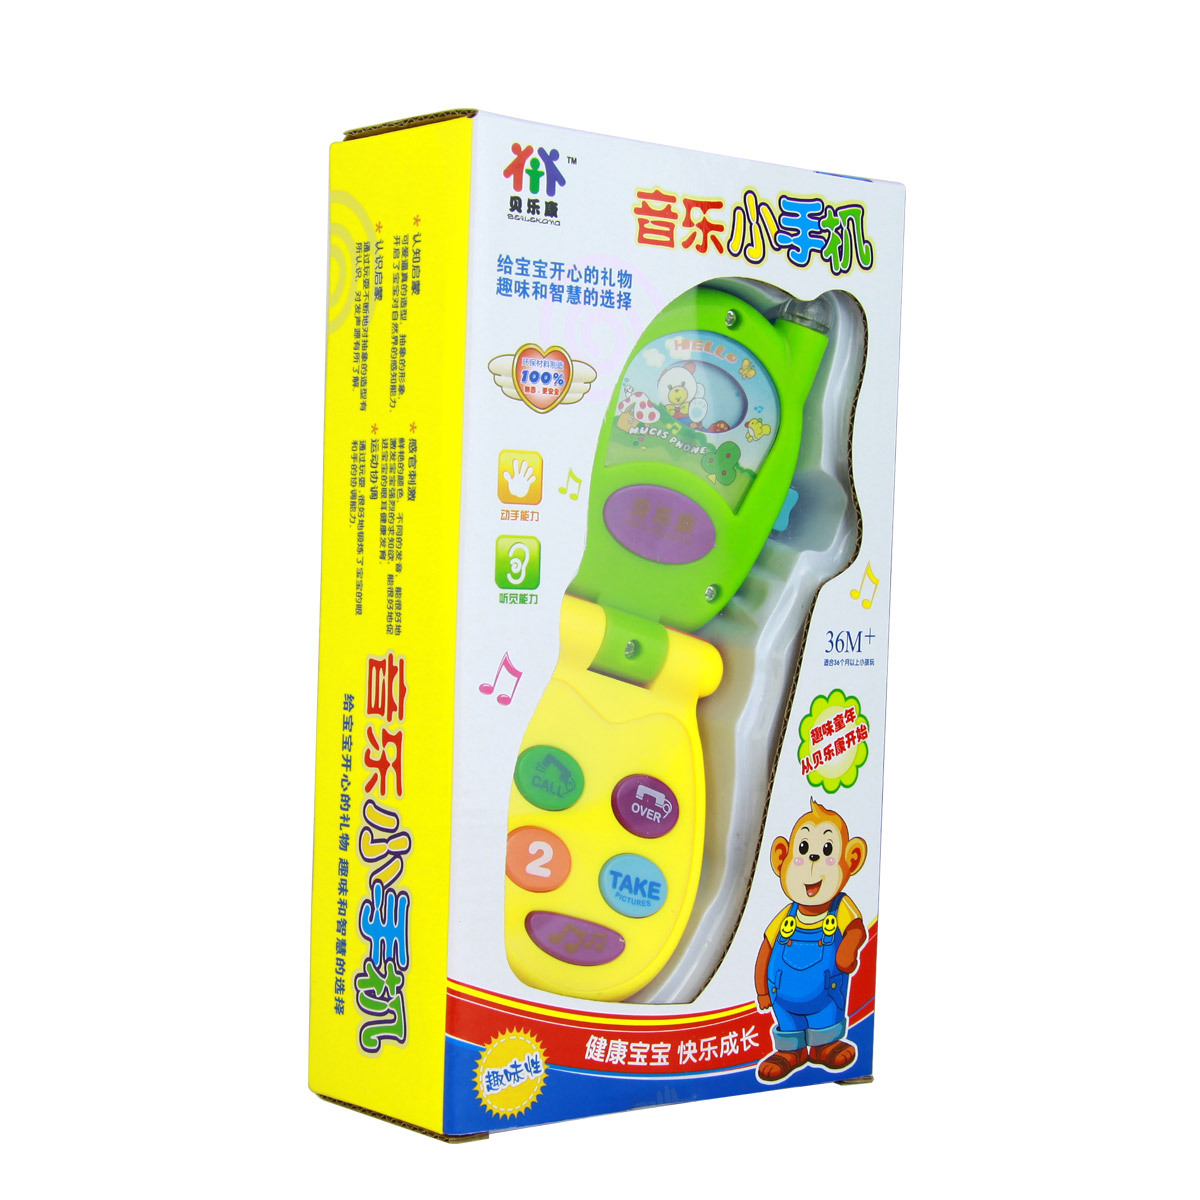 Toy mobile phone gustless music baby toys telephone toy mobile phone infant flip phone(China (Mainland))